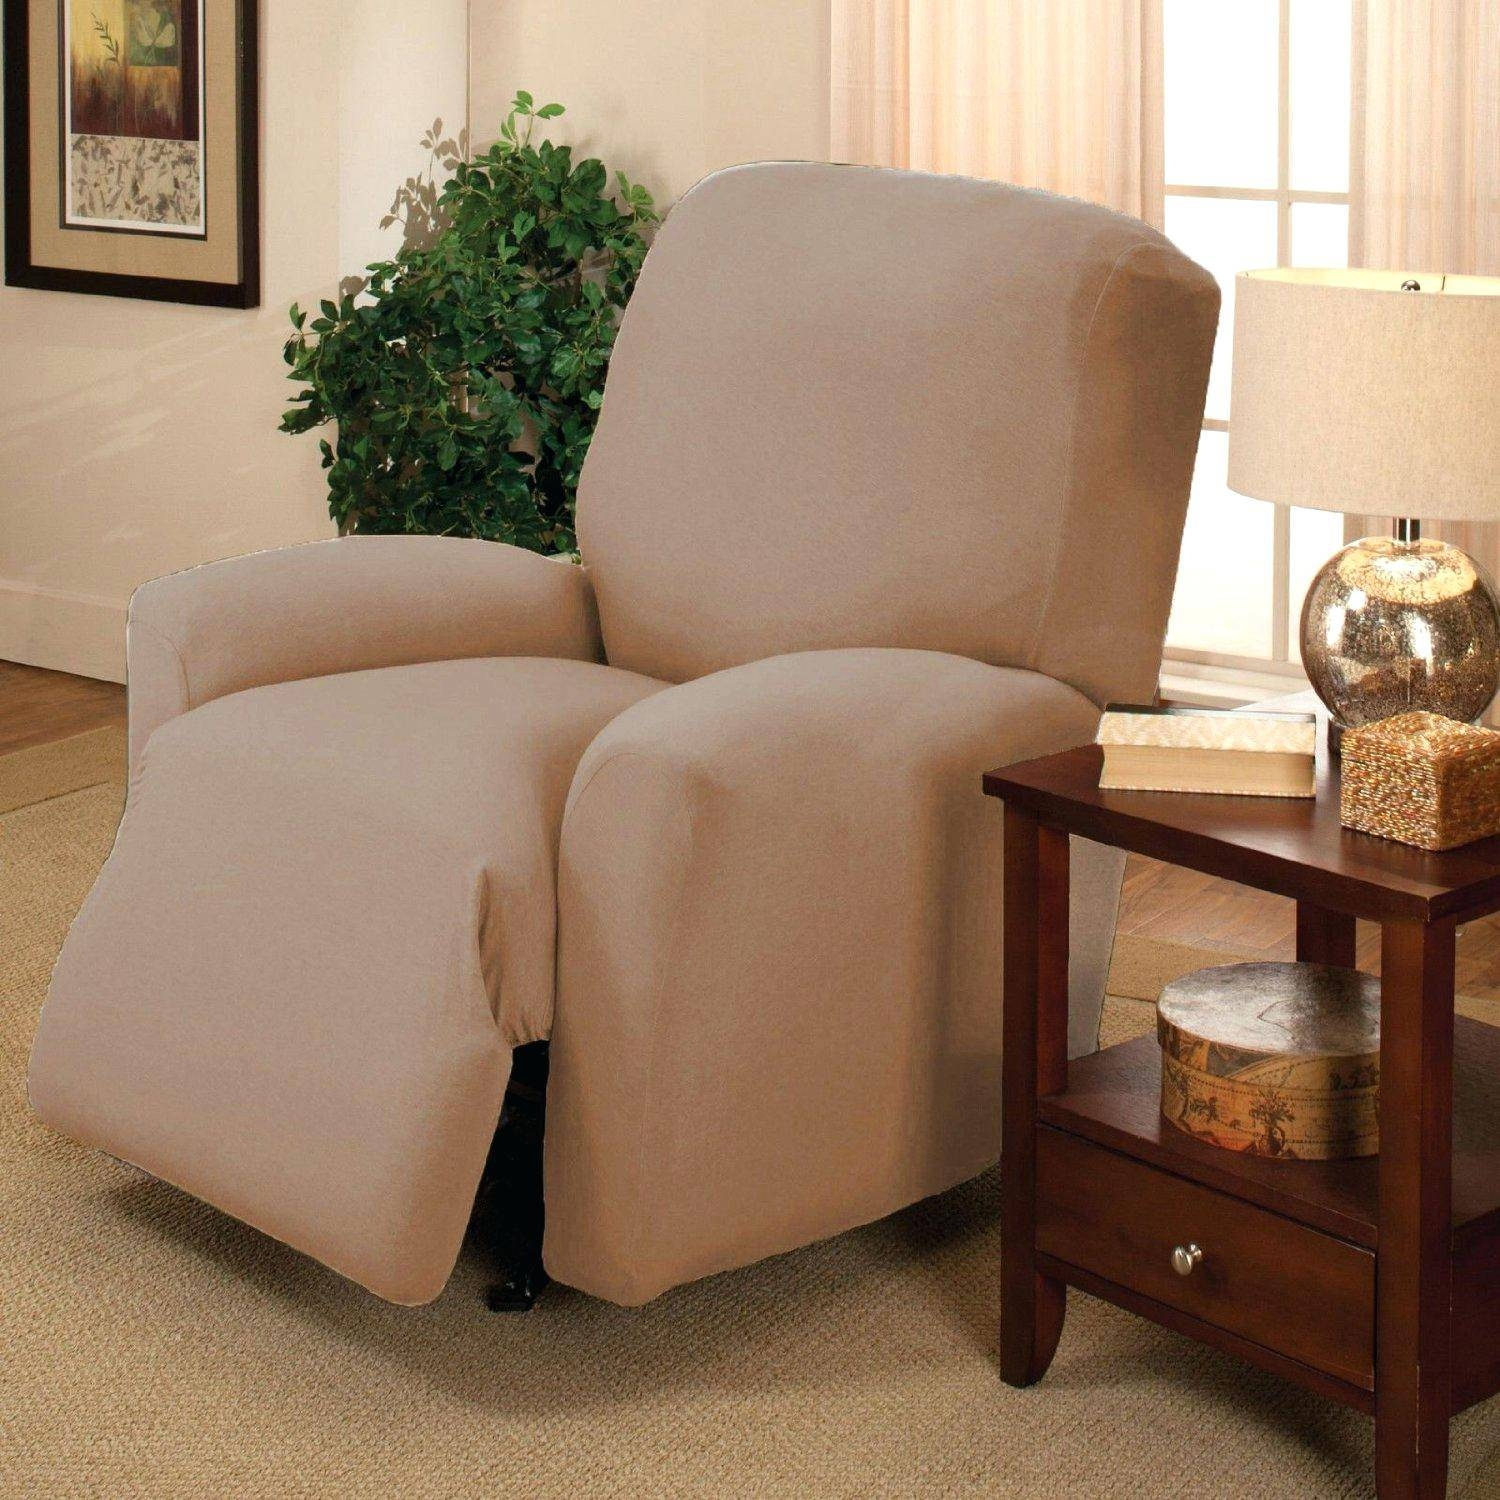 Recliner Arm Slipcovers 77 Stupendous Stunning Sofa Armchair intended for Slipcover For Reclining Sofas (Image 5 of 15)